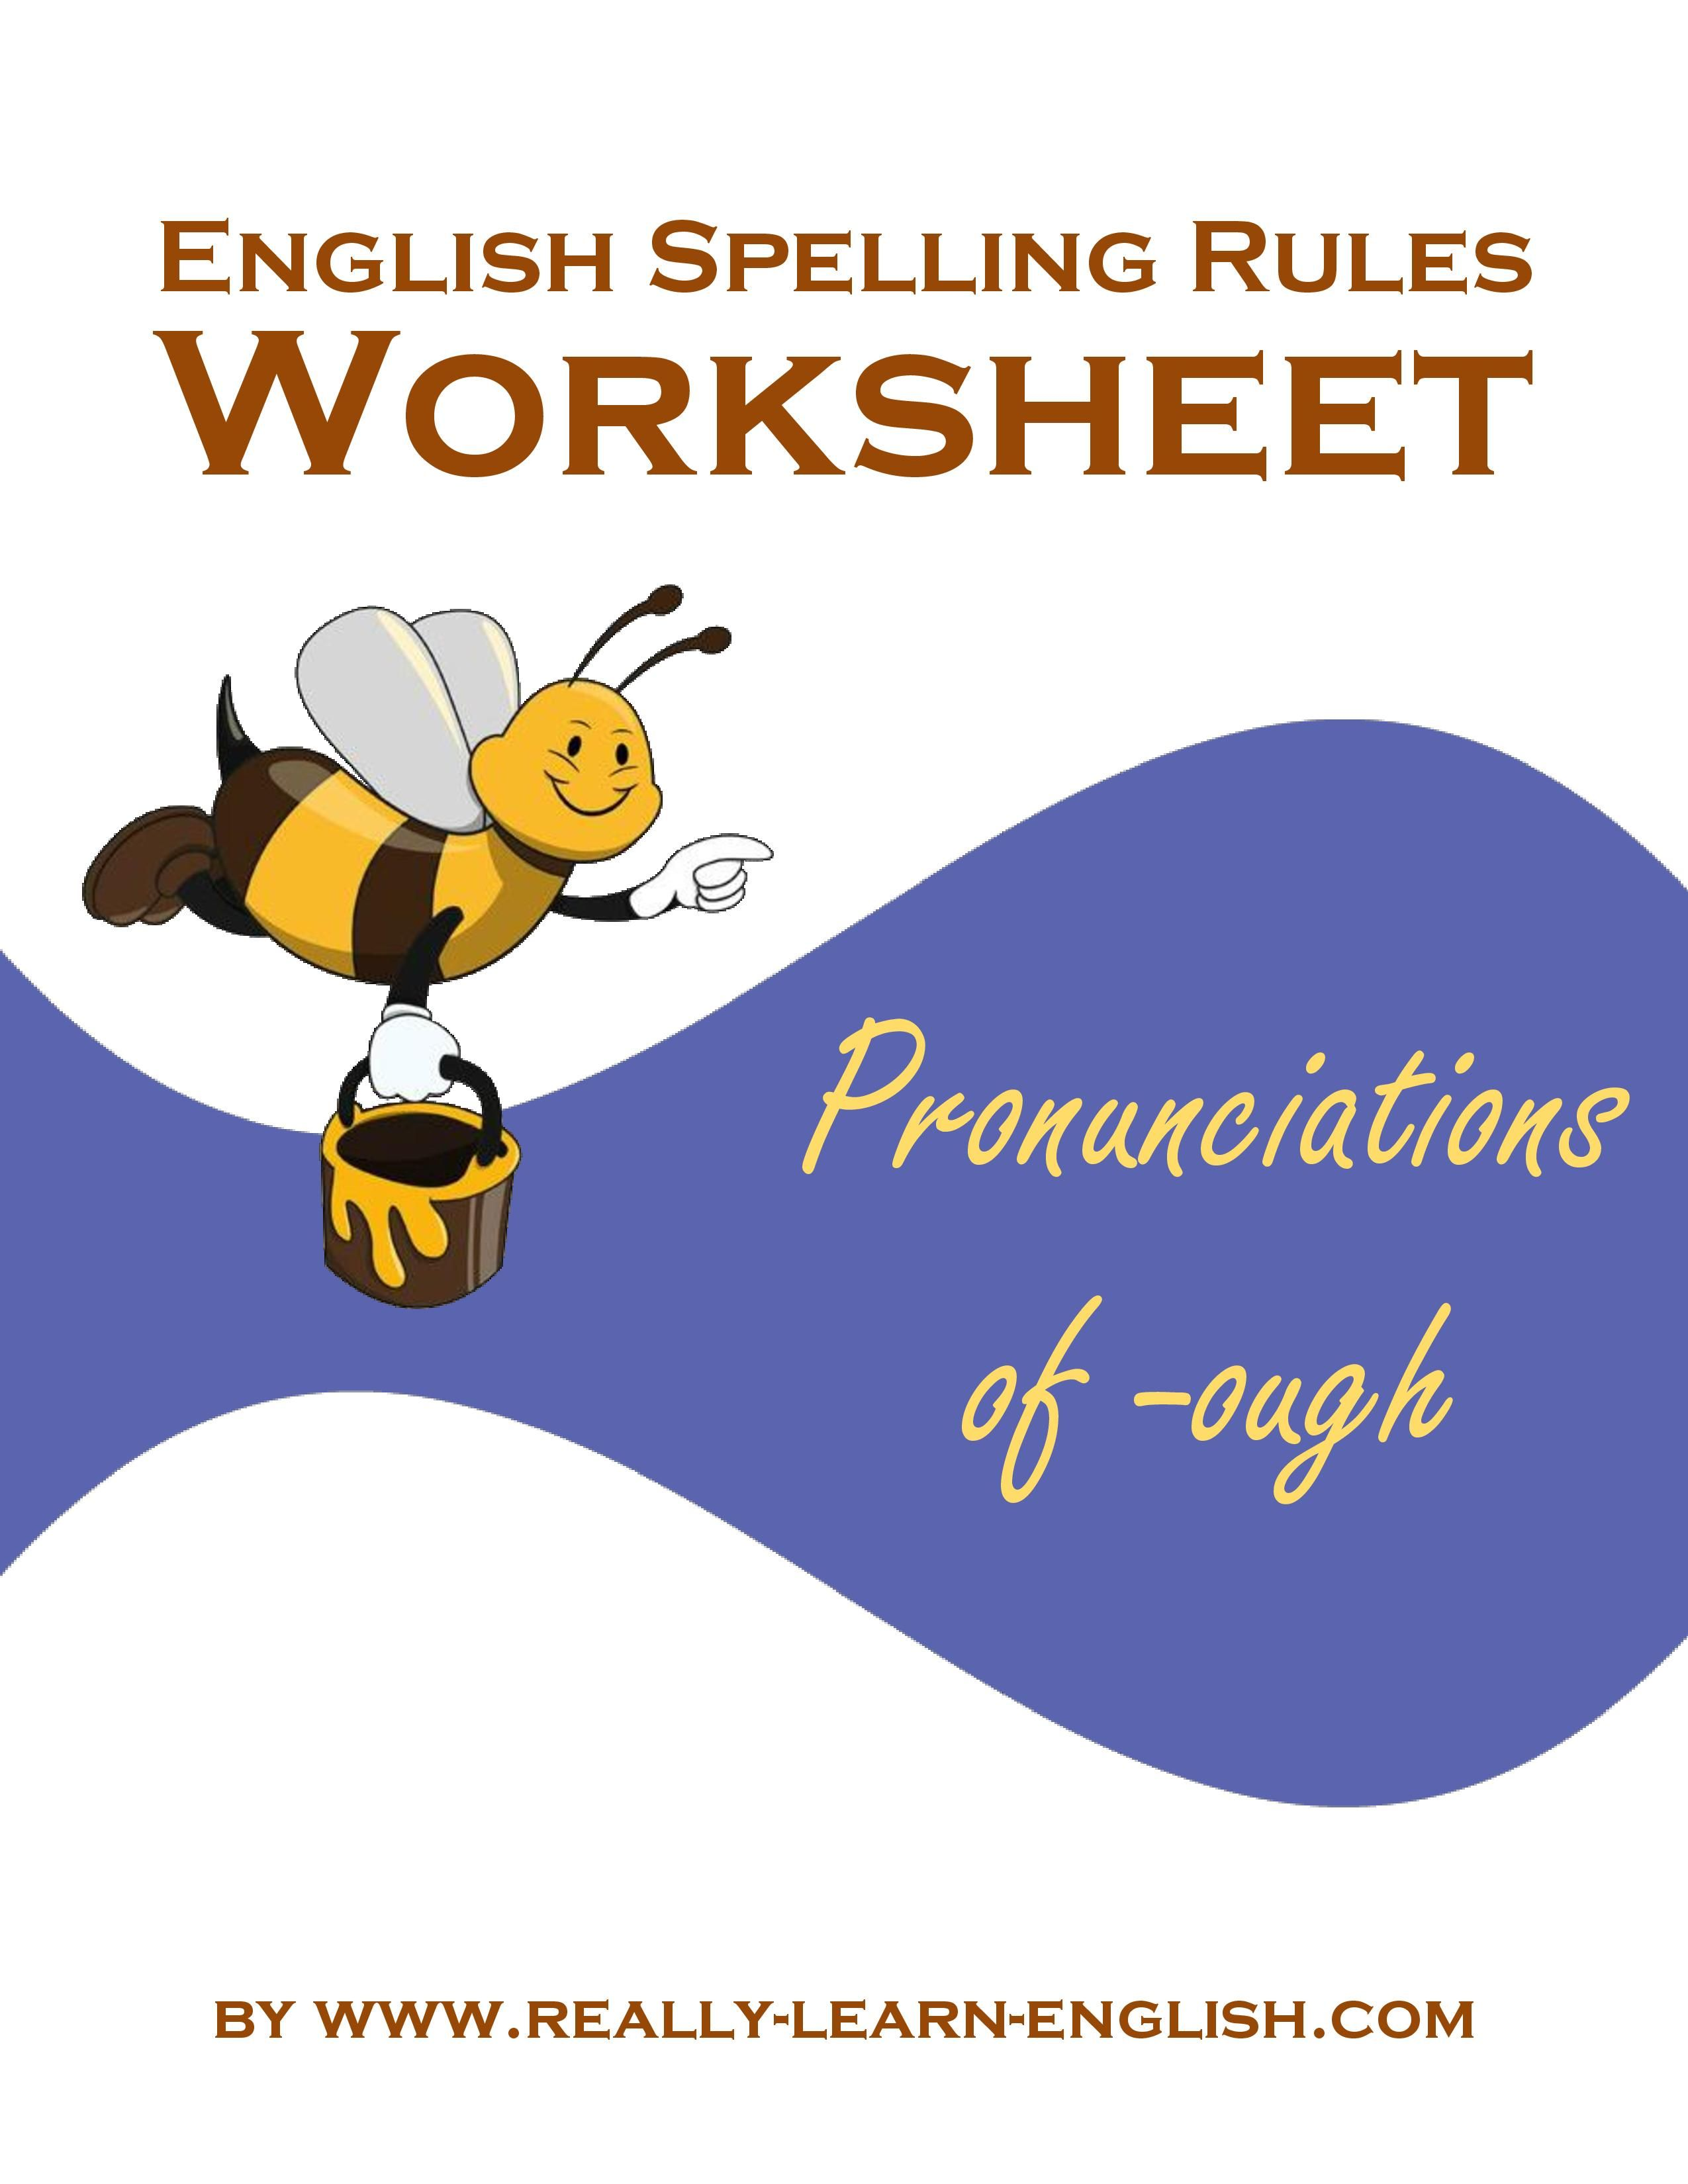 Worksheets Spelling Rules Worksheets the complete list of english spelling rules lesson 7 pronunciations ough examples worksheet and answer key